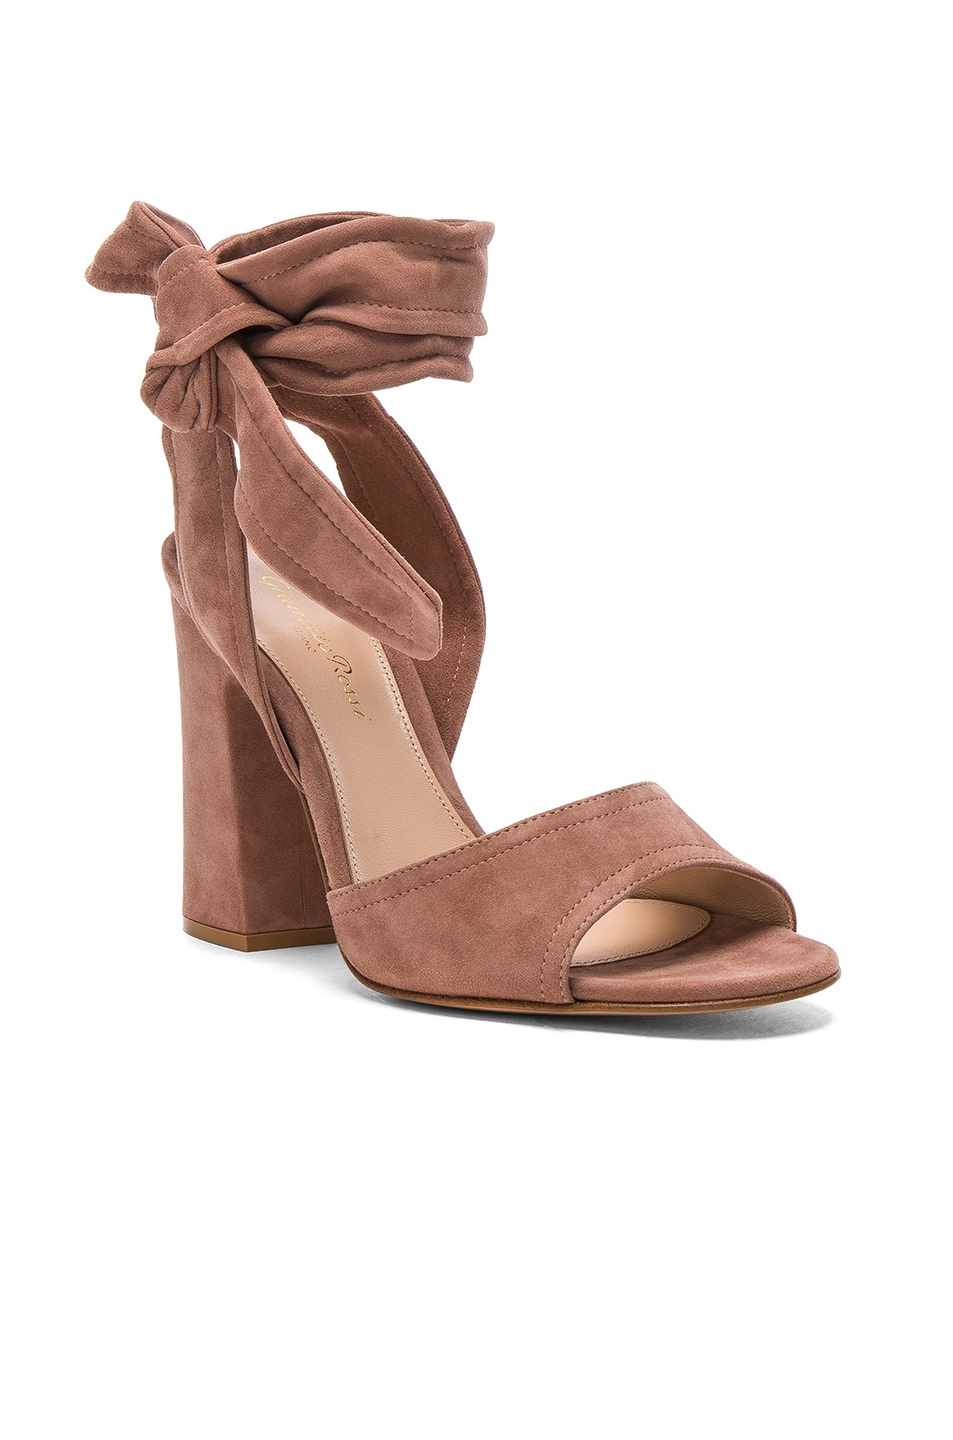 Image 2 of Gianvito Rossi Suede Ankle Tie Heels in Praline